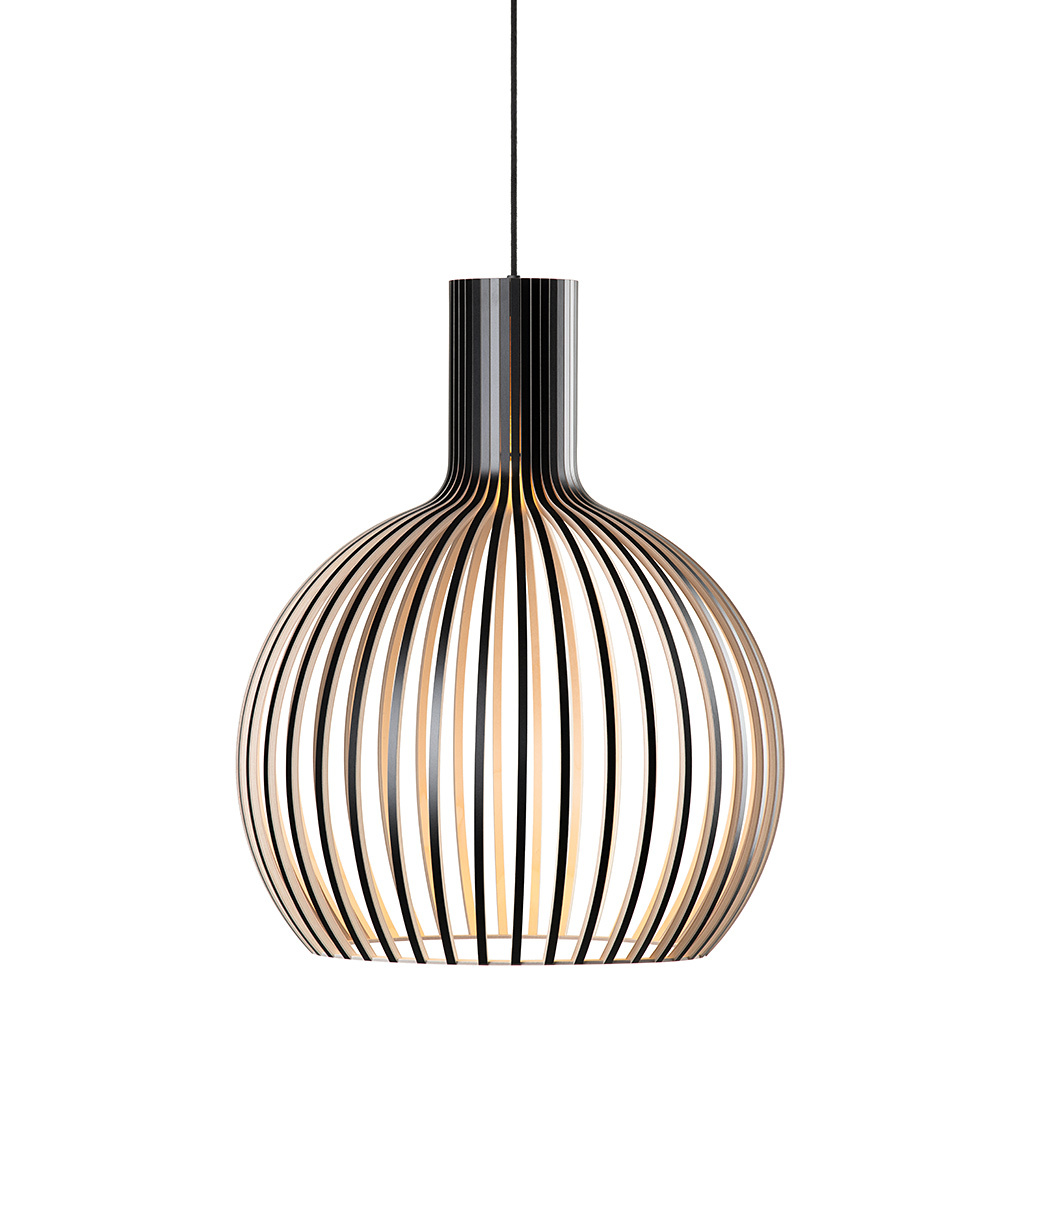 Octo Small 4241 pendant lamp color black